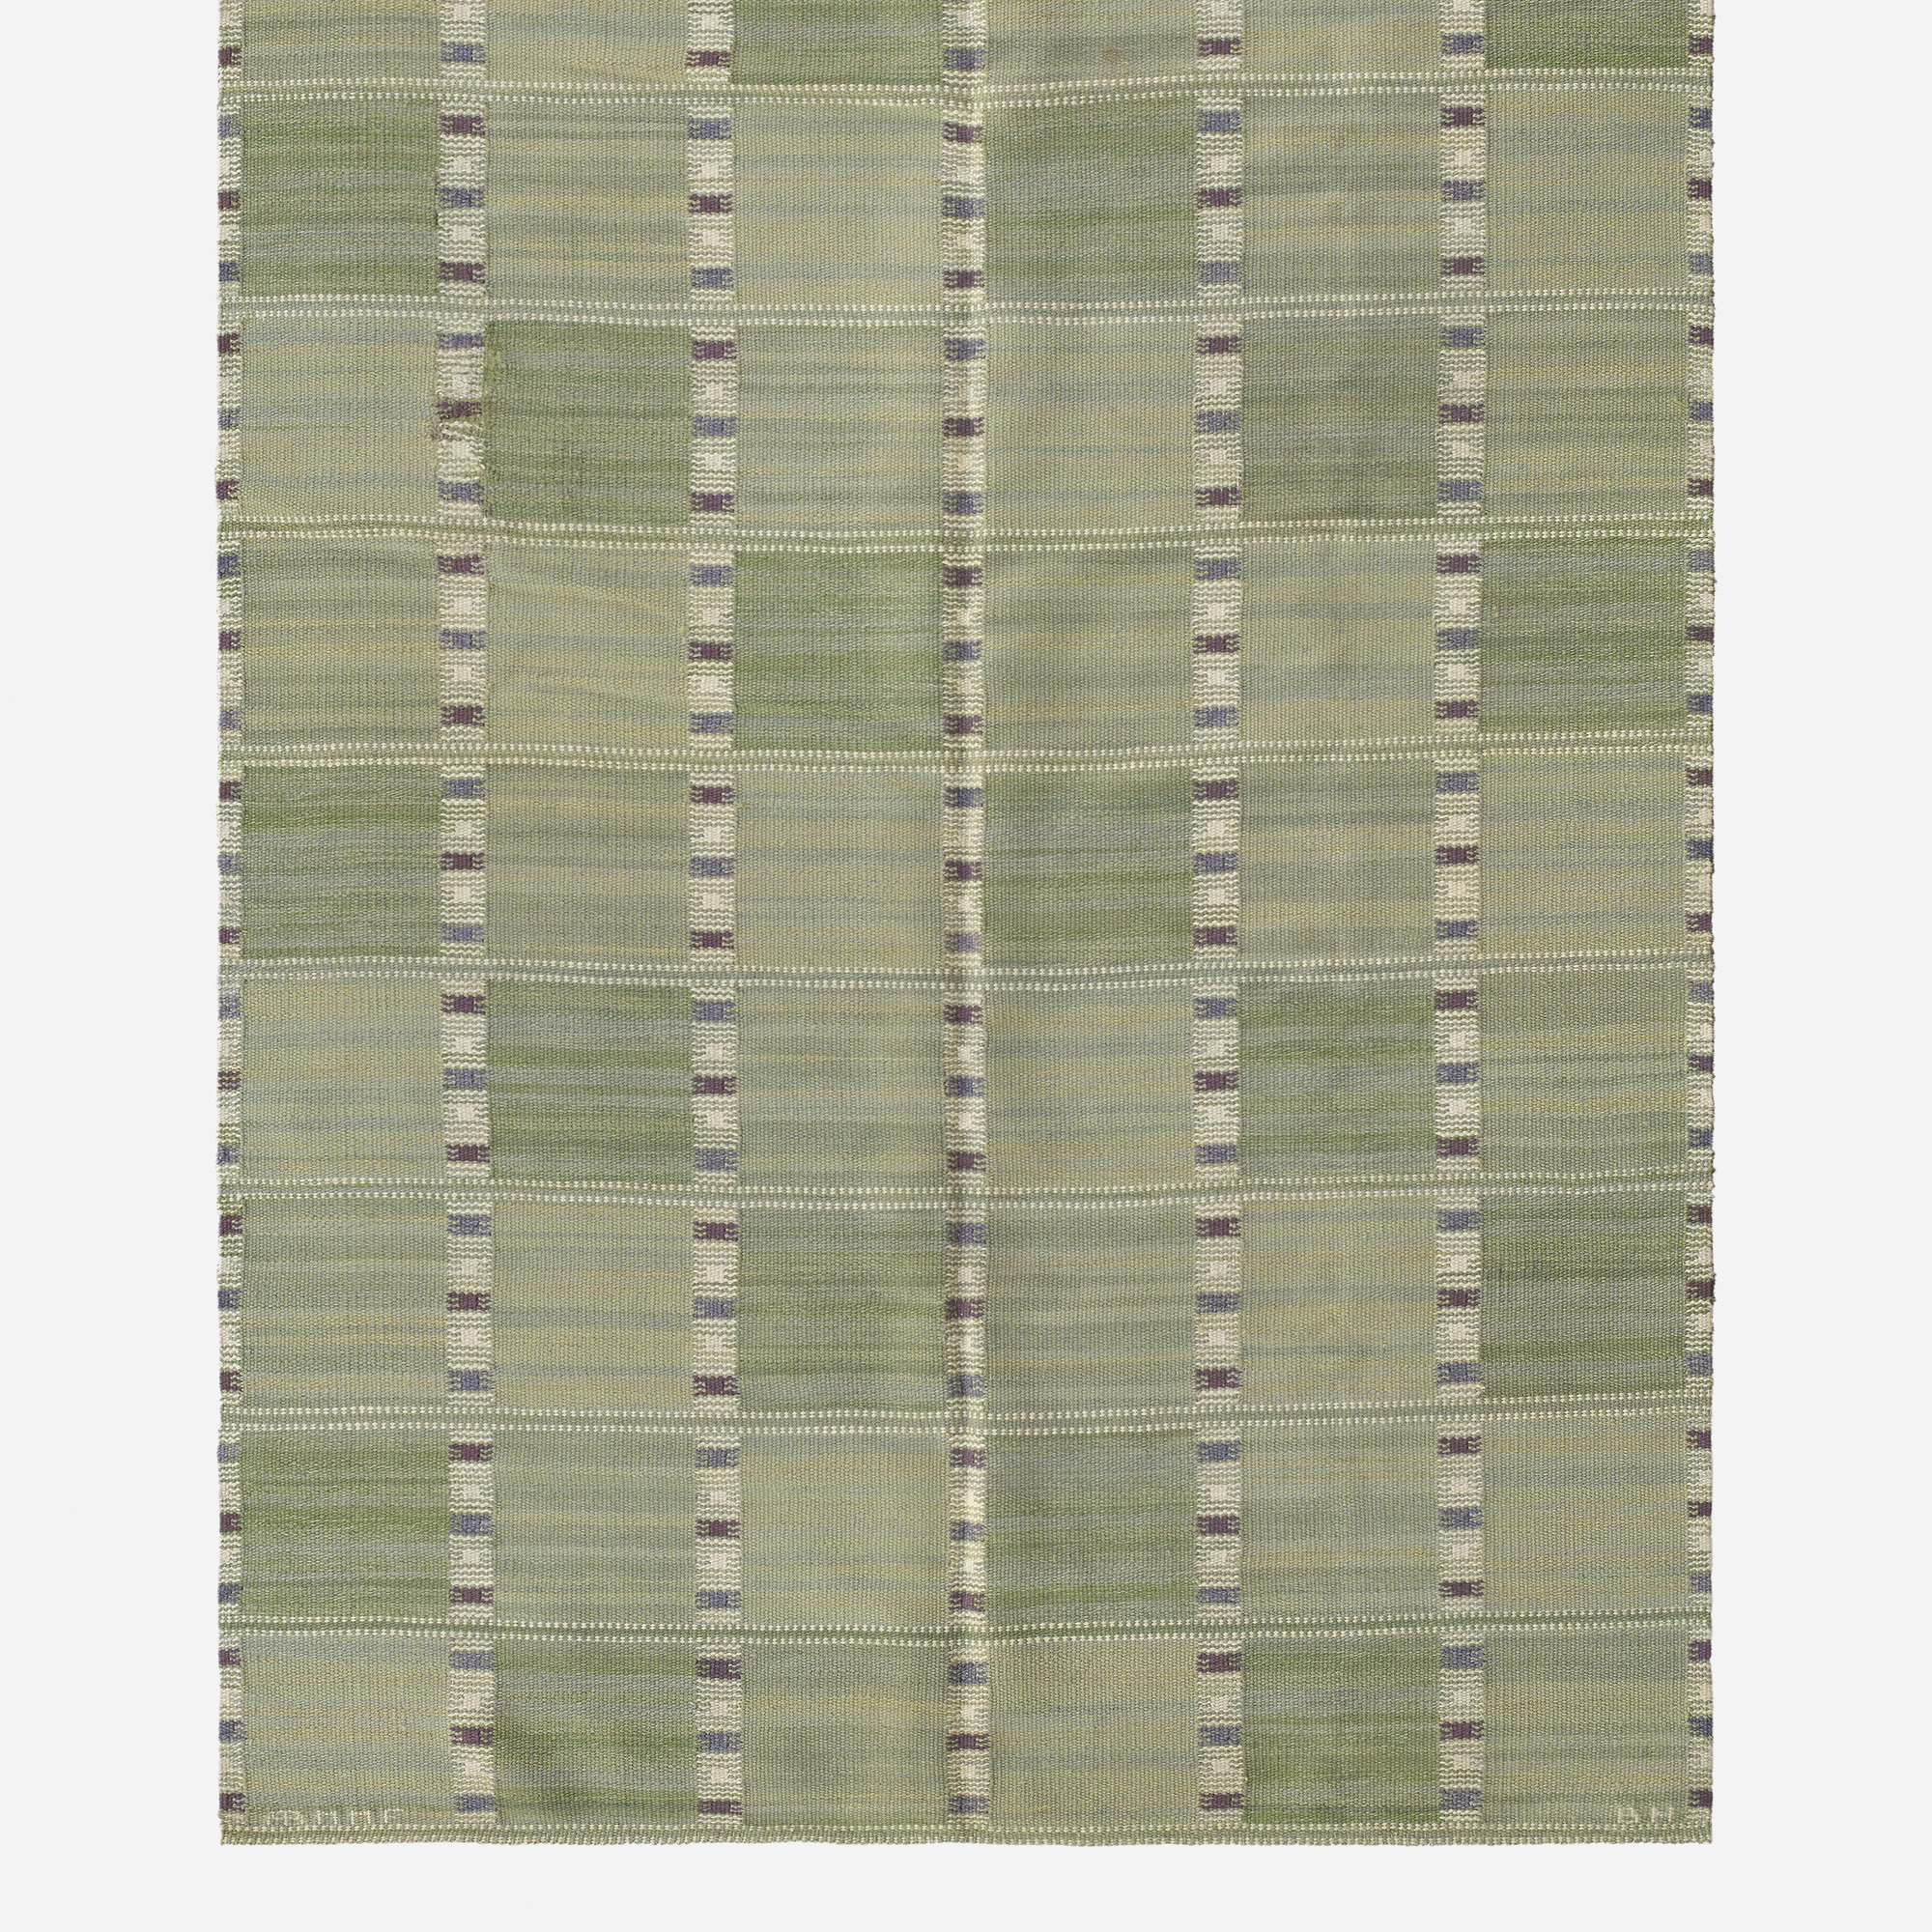 114: Barbro Nilsson / Falurutan flatweave carpet (2 of 2)